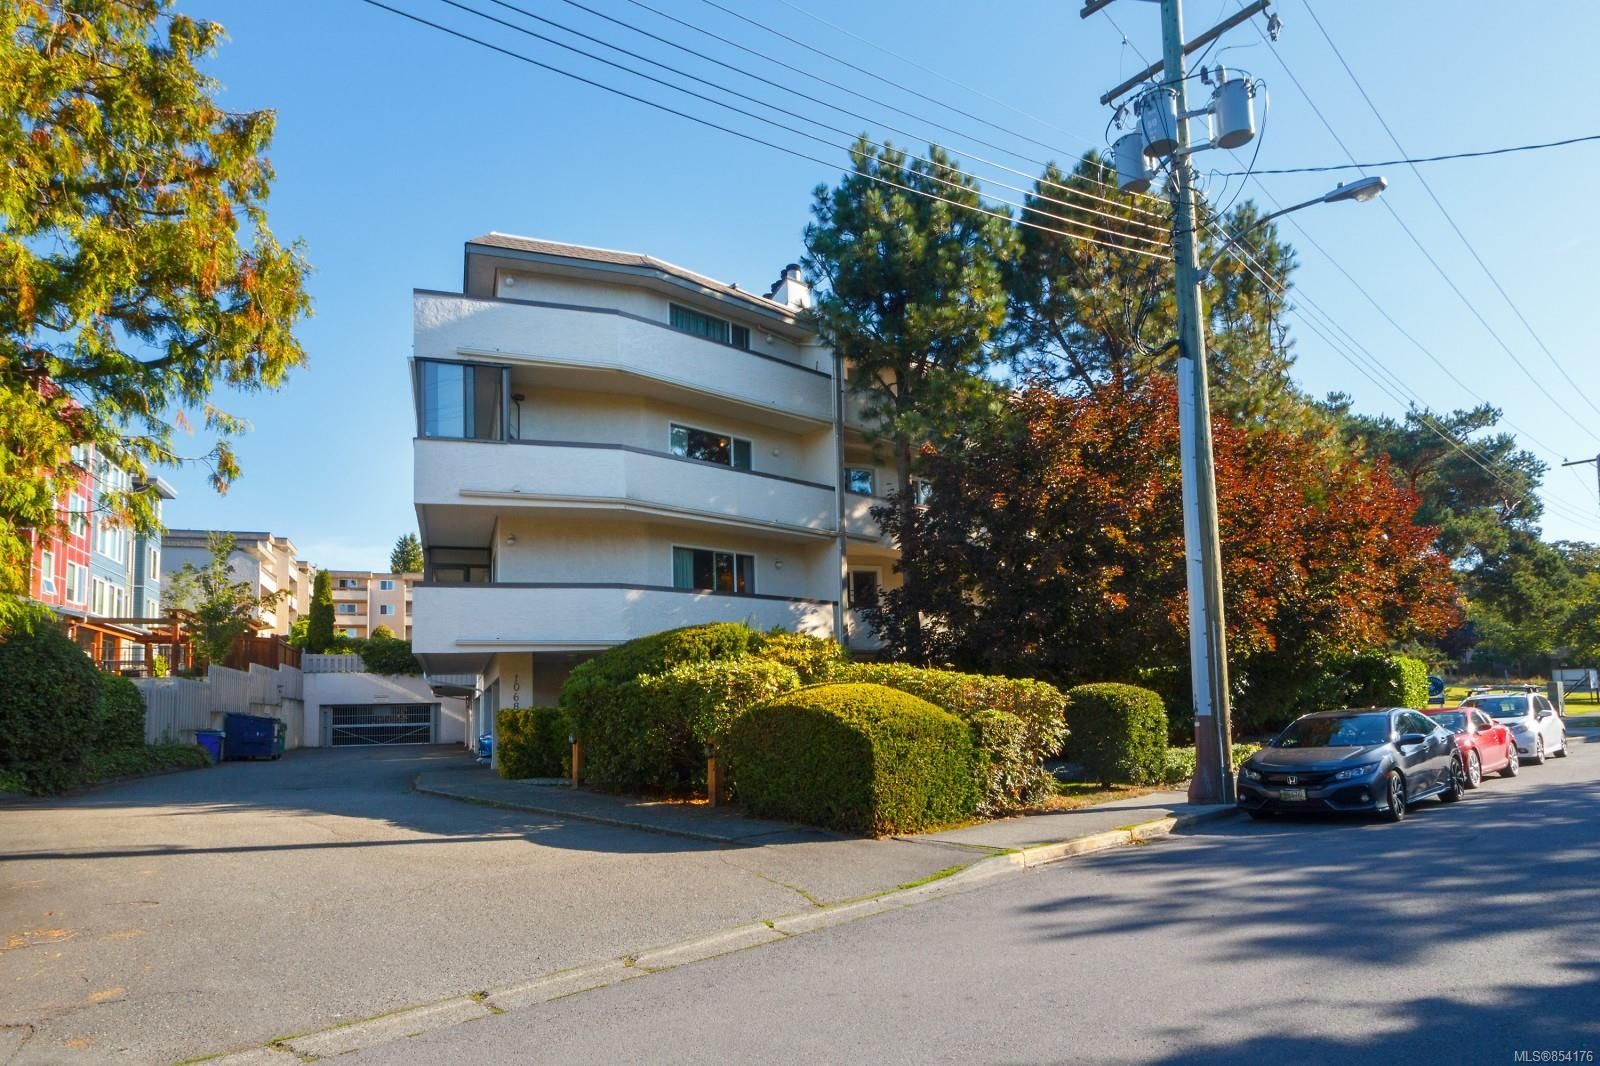 Main Photo: 306 1068 Tolmie Ave in : SE Maplewood Condo for sale (Saanich East)  : MLS®# 854176